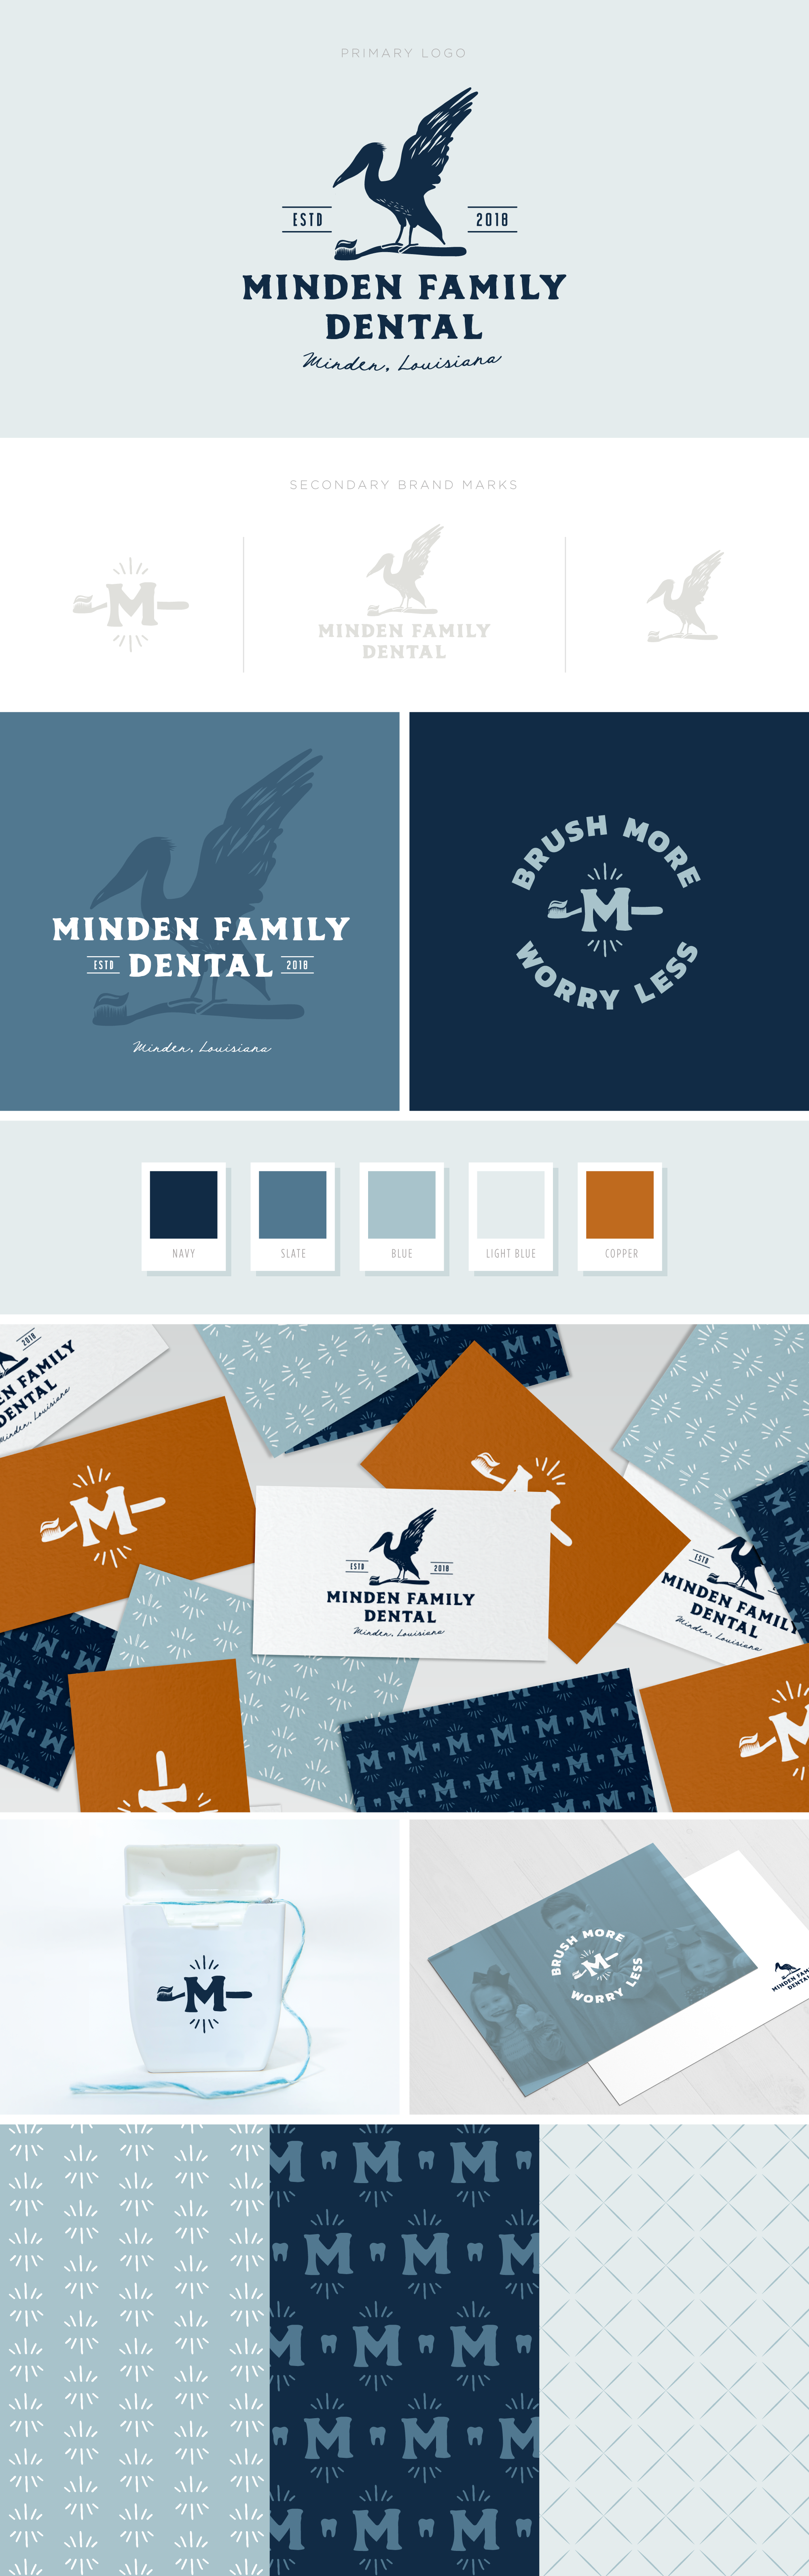 Minden Family Dental brand design by Pace Creative Design Studio